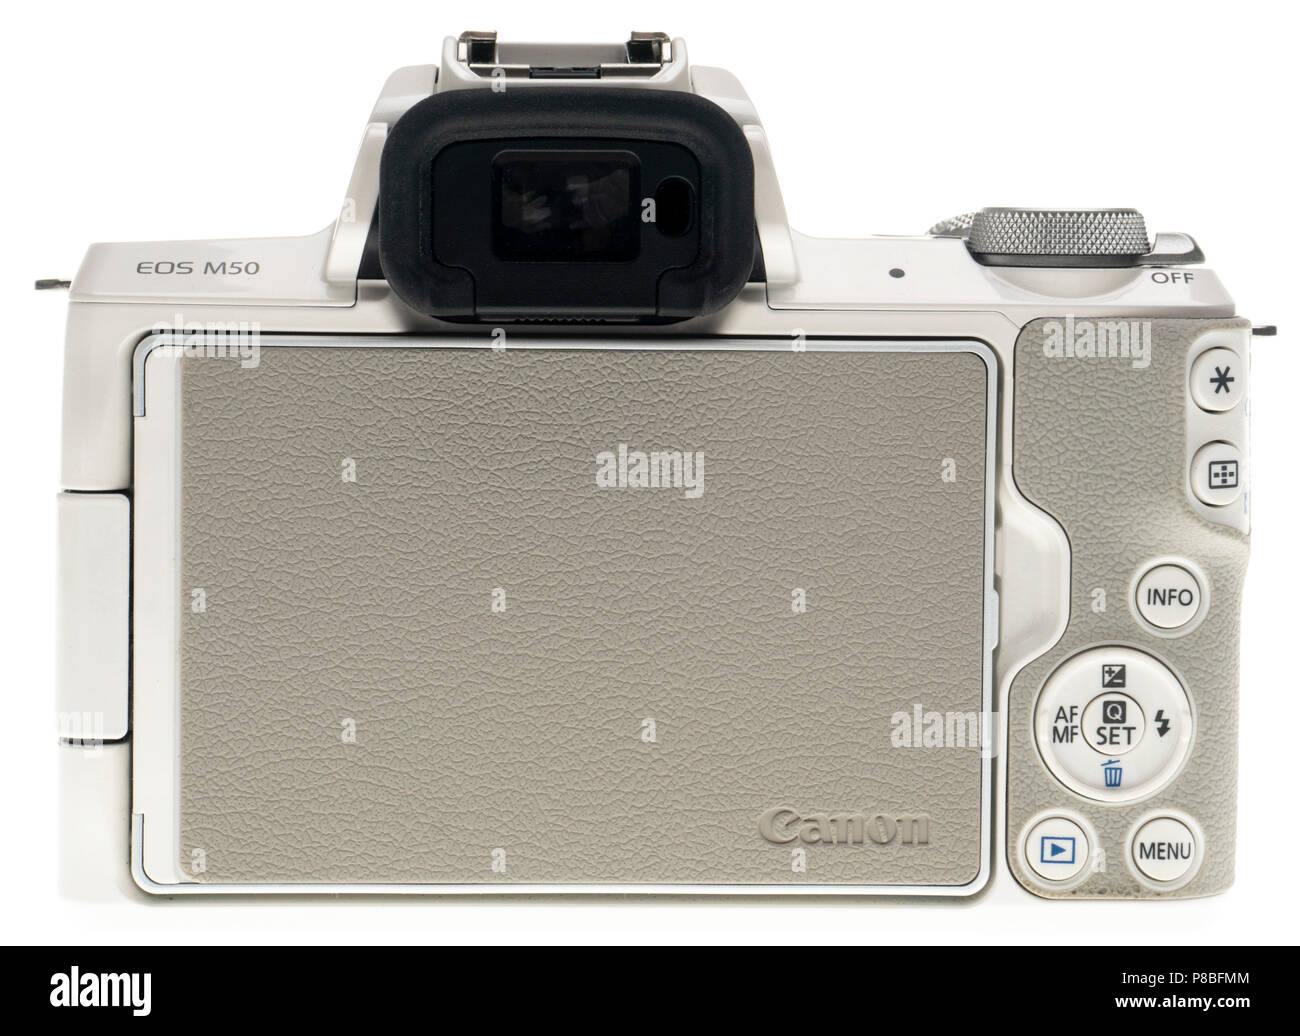 Canon EOS M50 small format mirrorless system camera for the entry level market - Stock Image